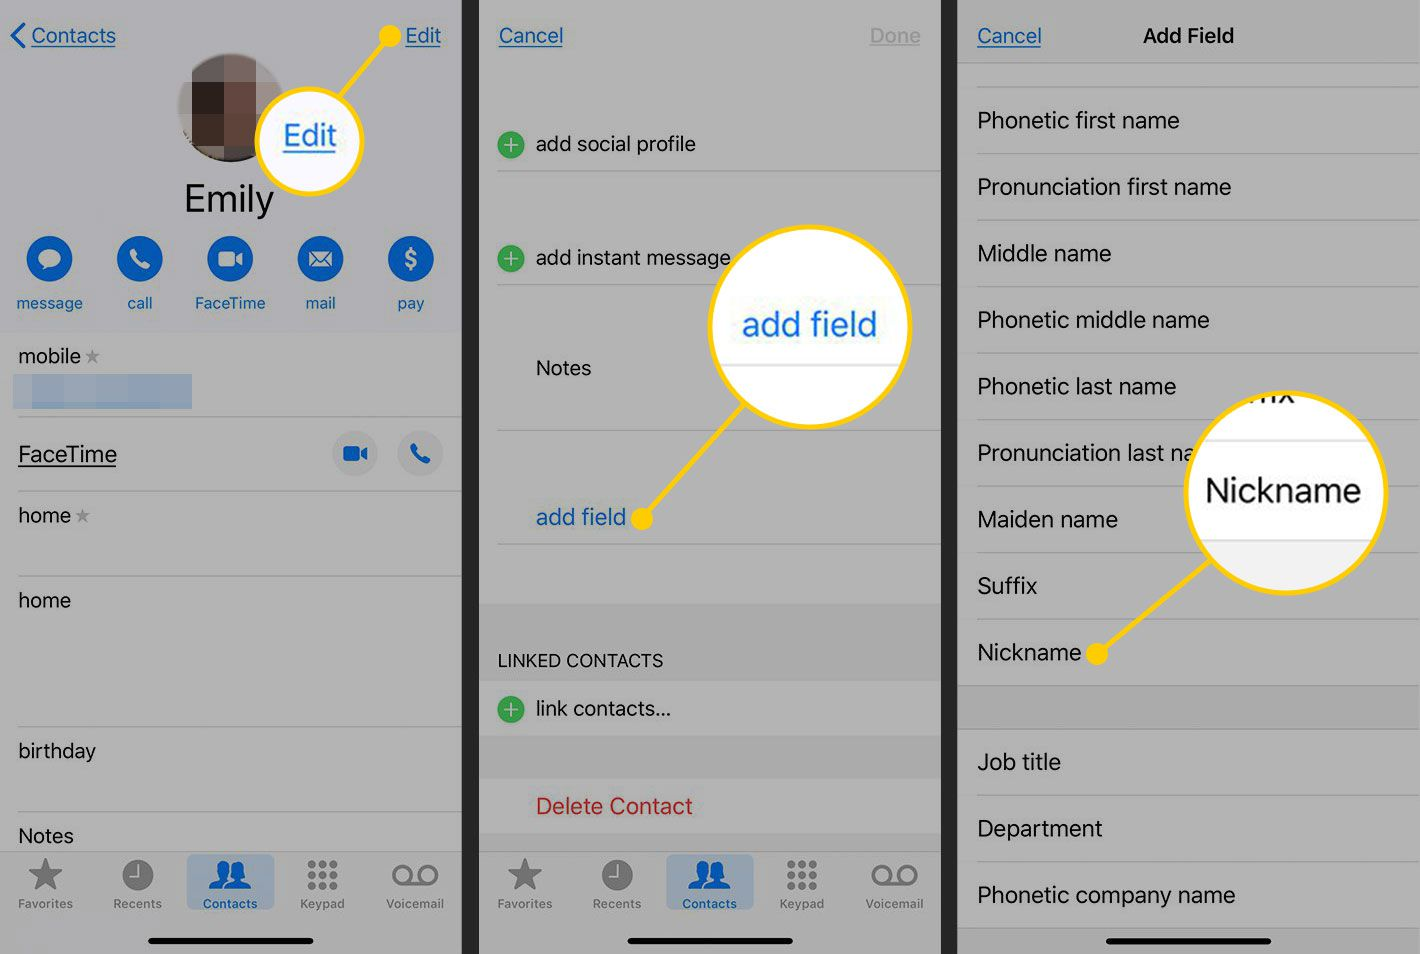 Adding a field to a contact on iOS